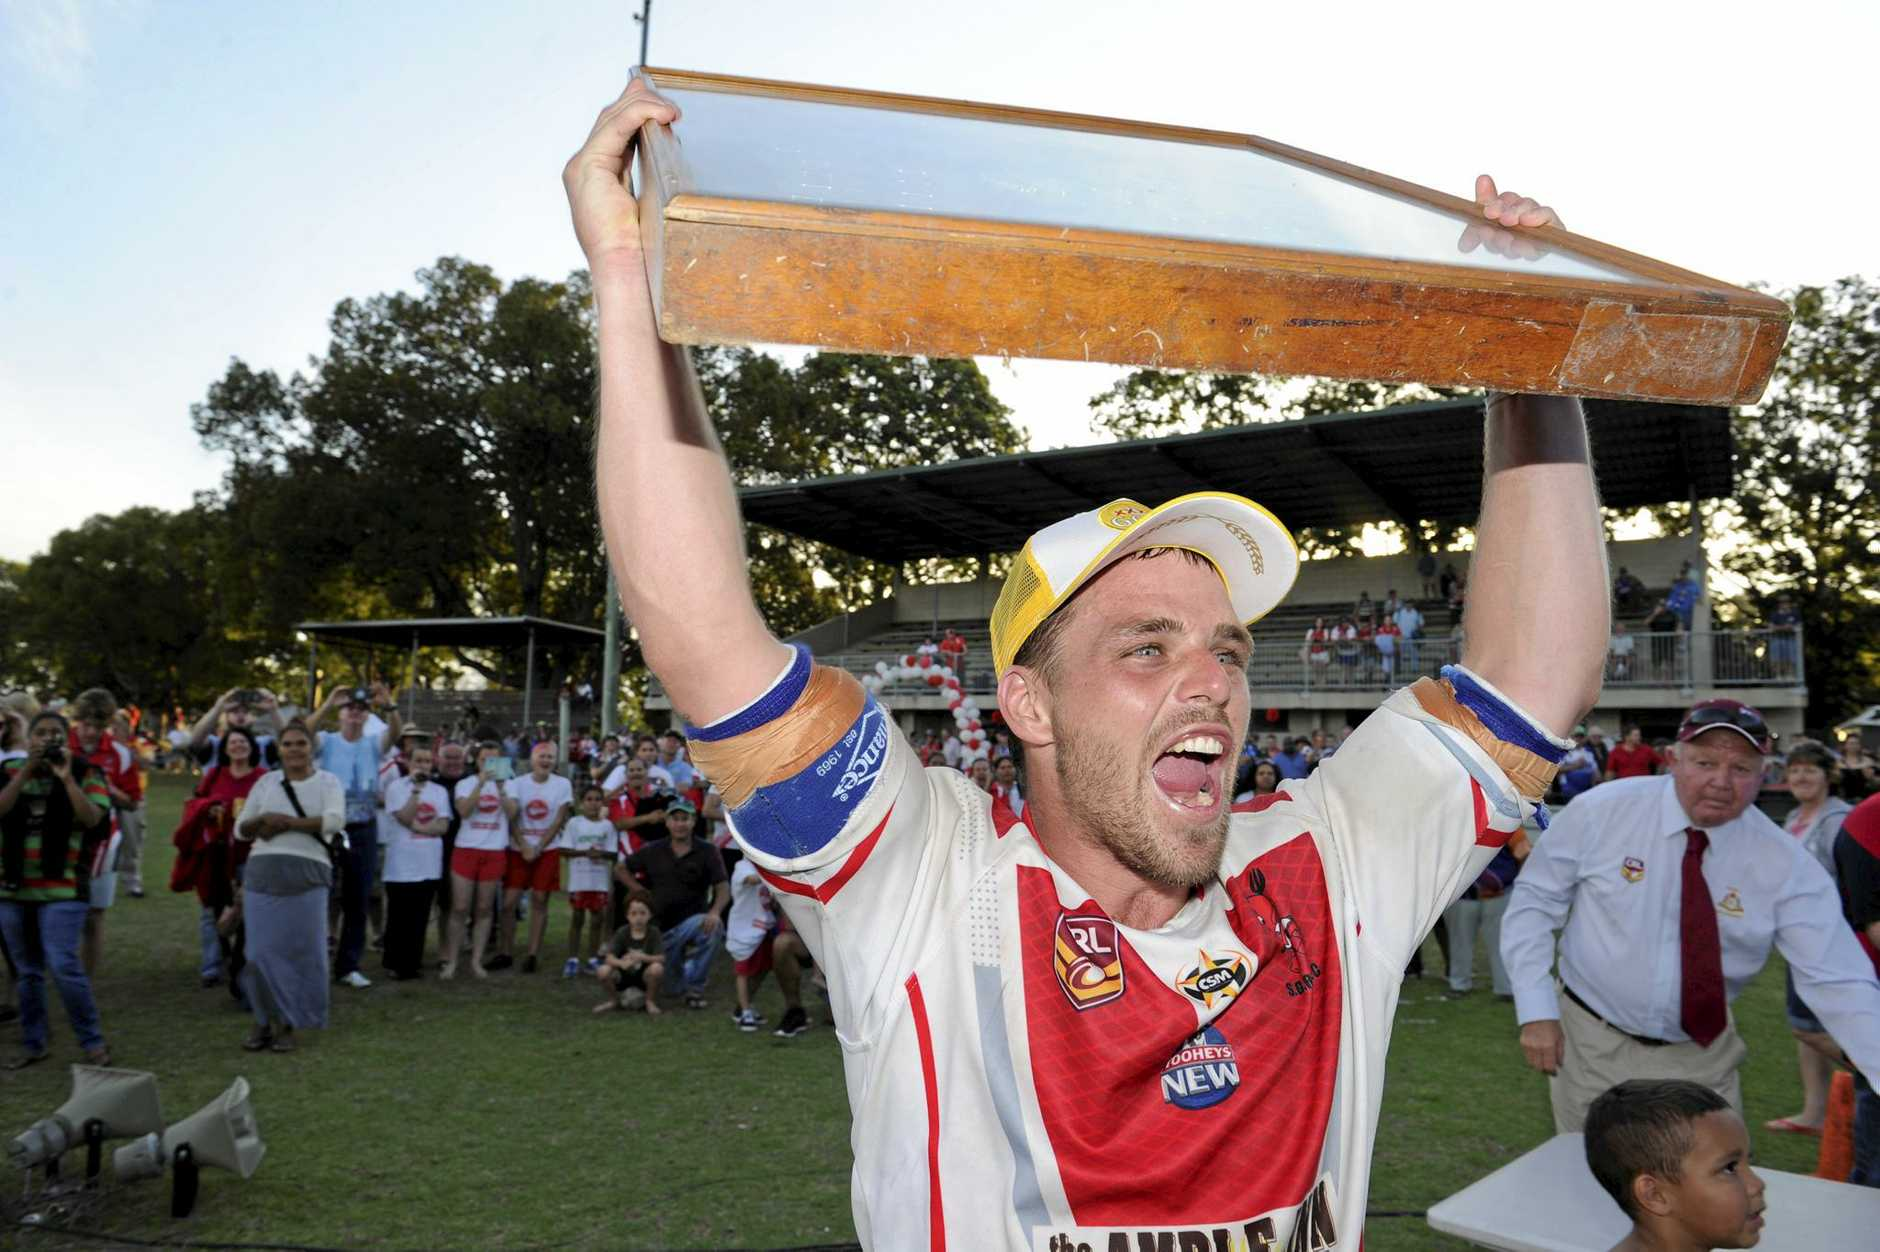 Rebel captain Rhys Walters holds up the trophy after winning the Group 2 Country Rugby League 1st Grade grand final between South Grafton Rebels and Coffs Comets at McKittrick Park South Grafton on Sunday 23 August, 2015. Final score Rebels way 46-18. Photo Debrah Novak / The Daily Examiner